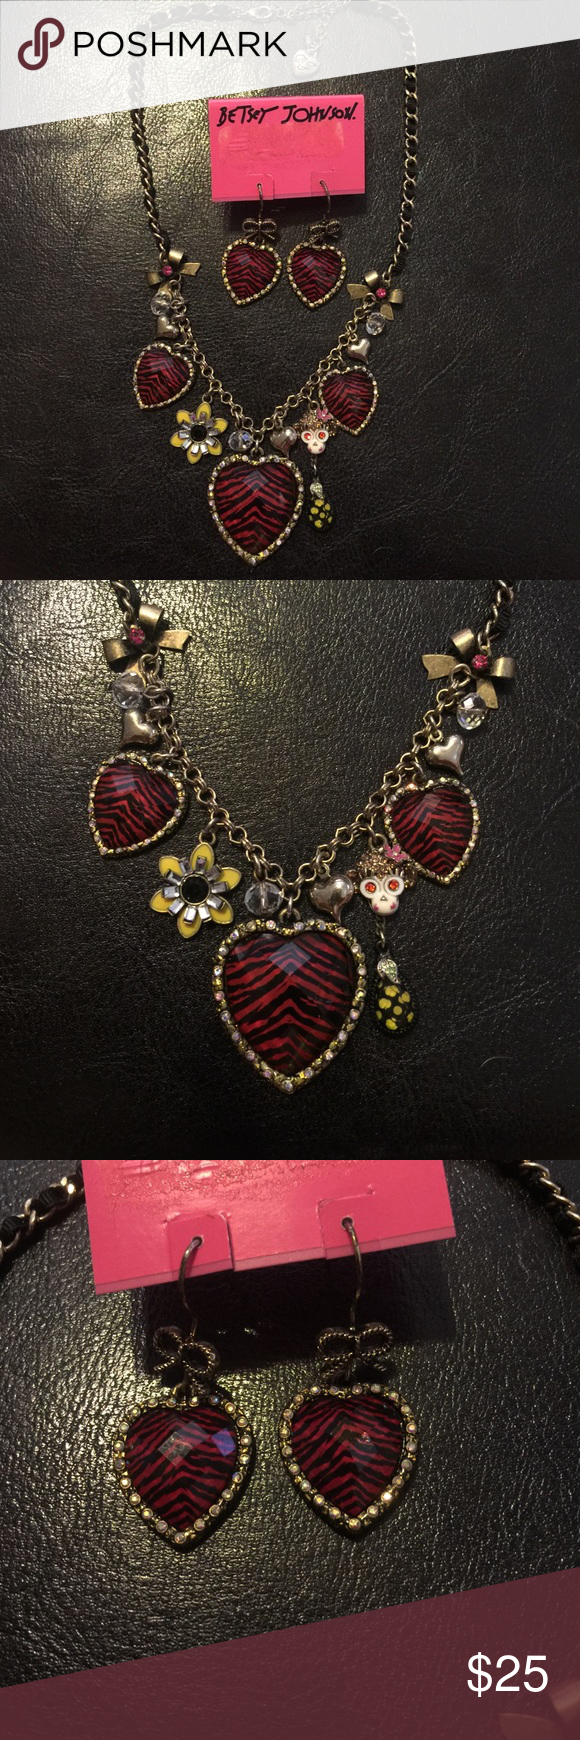 Betsey Johnson Safari necklace and earring set EUC matching Betsey Johnson safari necklace and earring set, with pink zebra print hearts. Necklace has monkey and flower accents. Betsey Johnson Jewelry